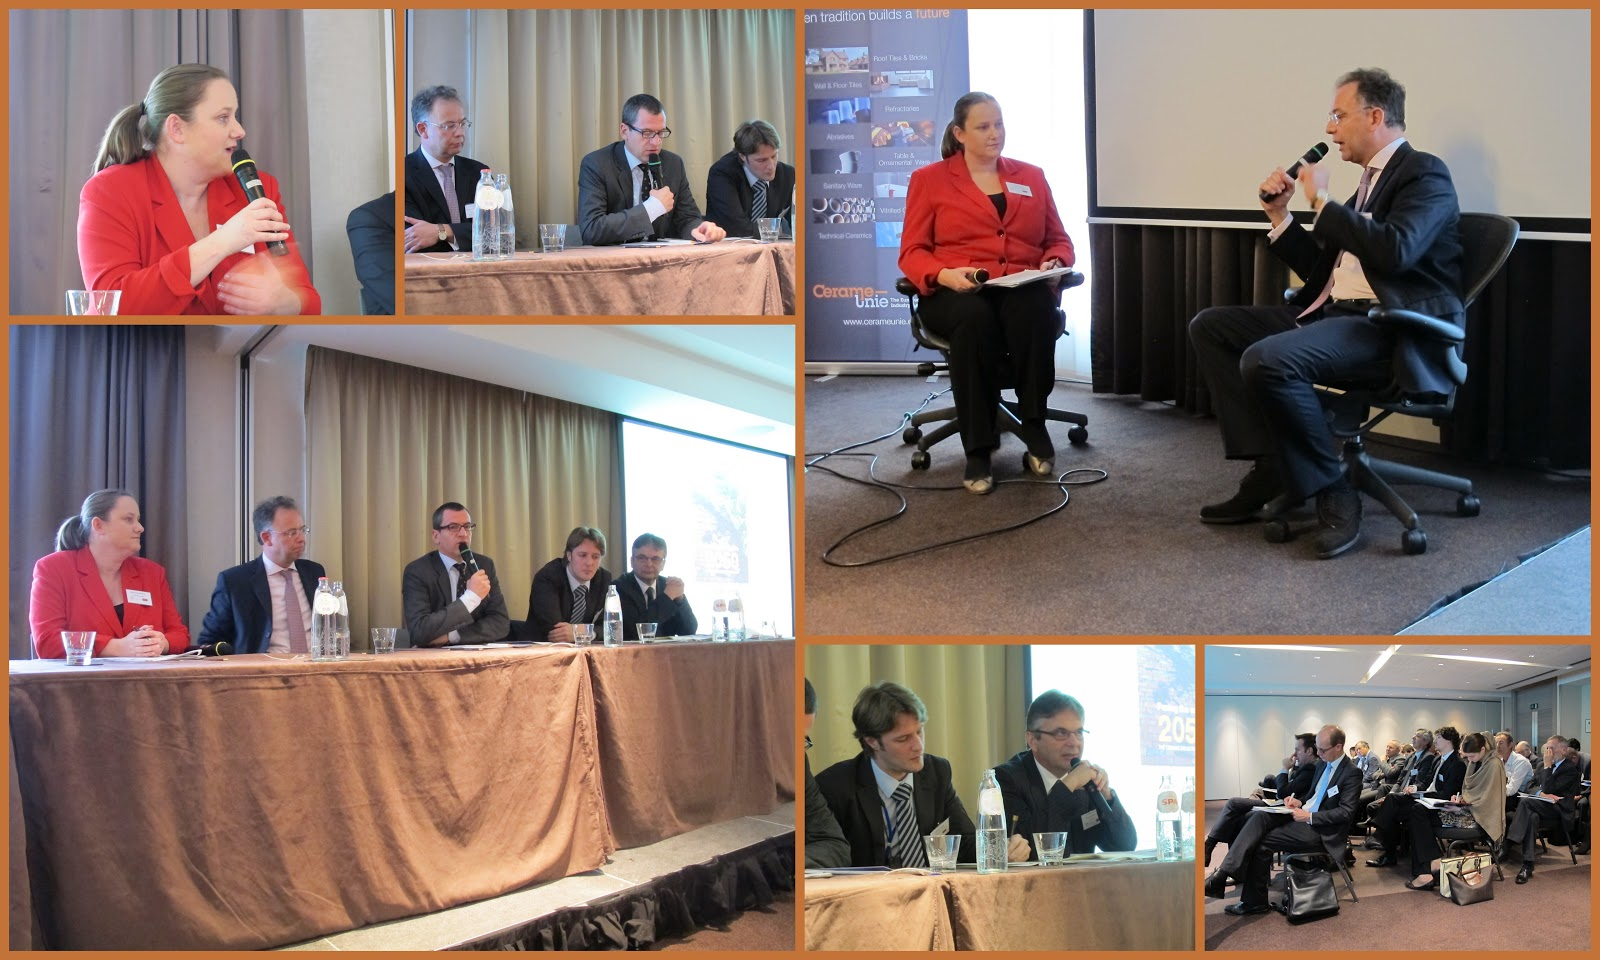 Cerame Unie Roadmap to 2050 launch photos 2012